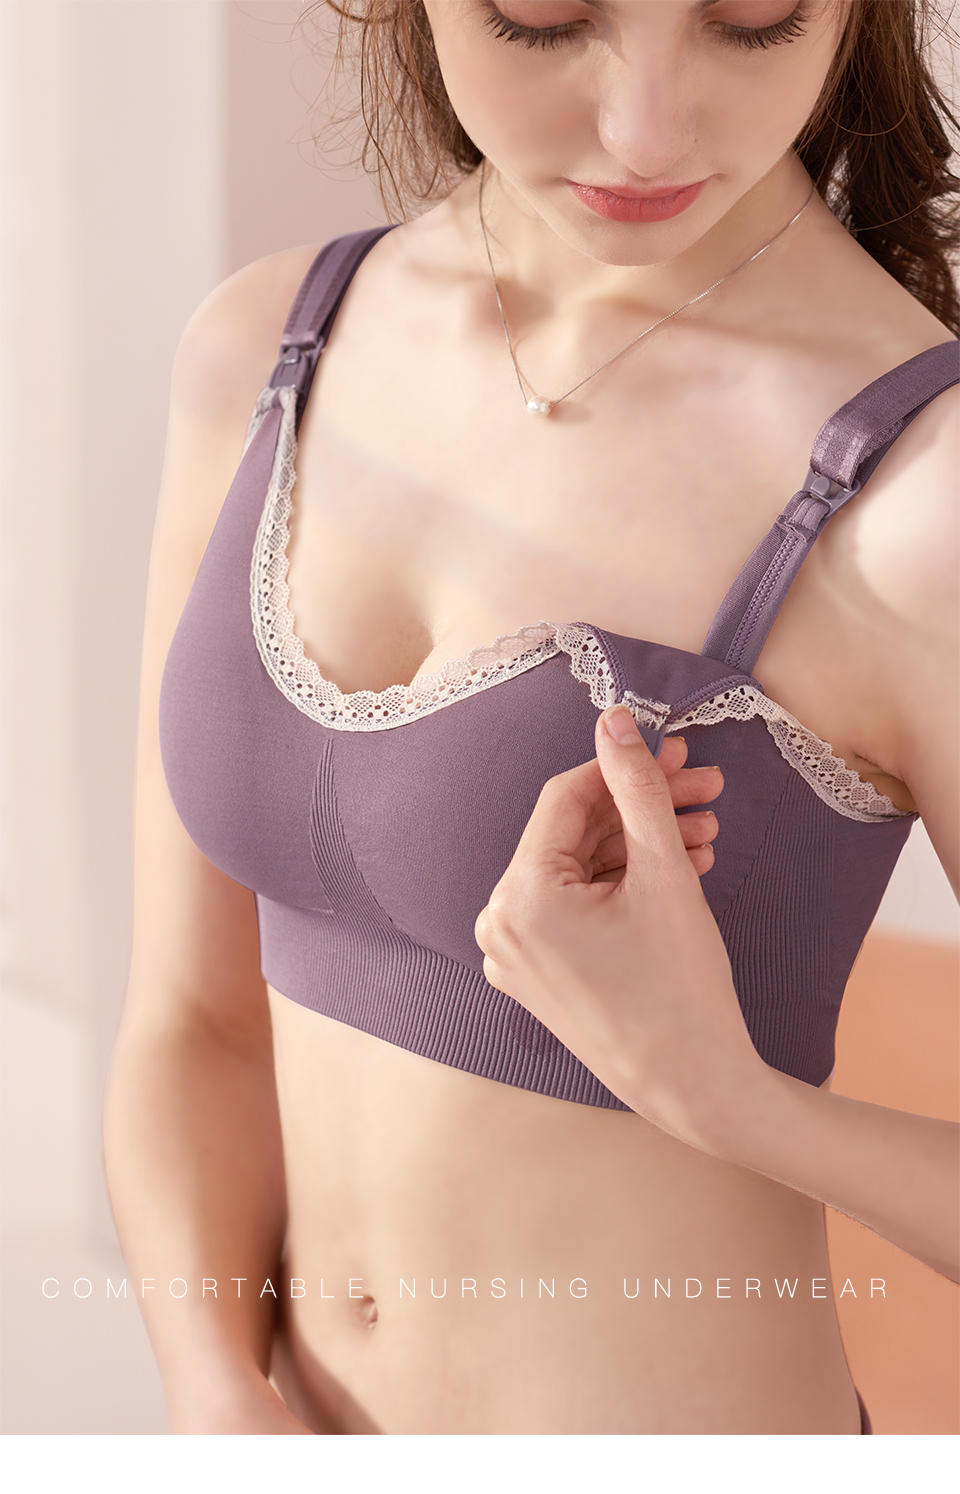 2020 Should you wear a bra to bed when breastfeeding?